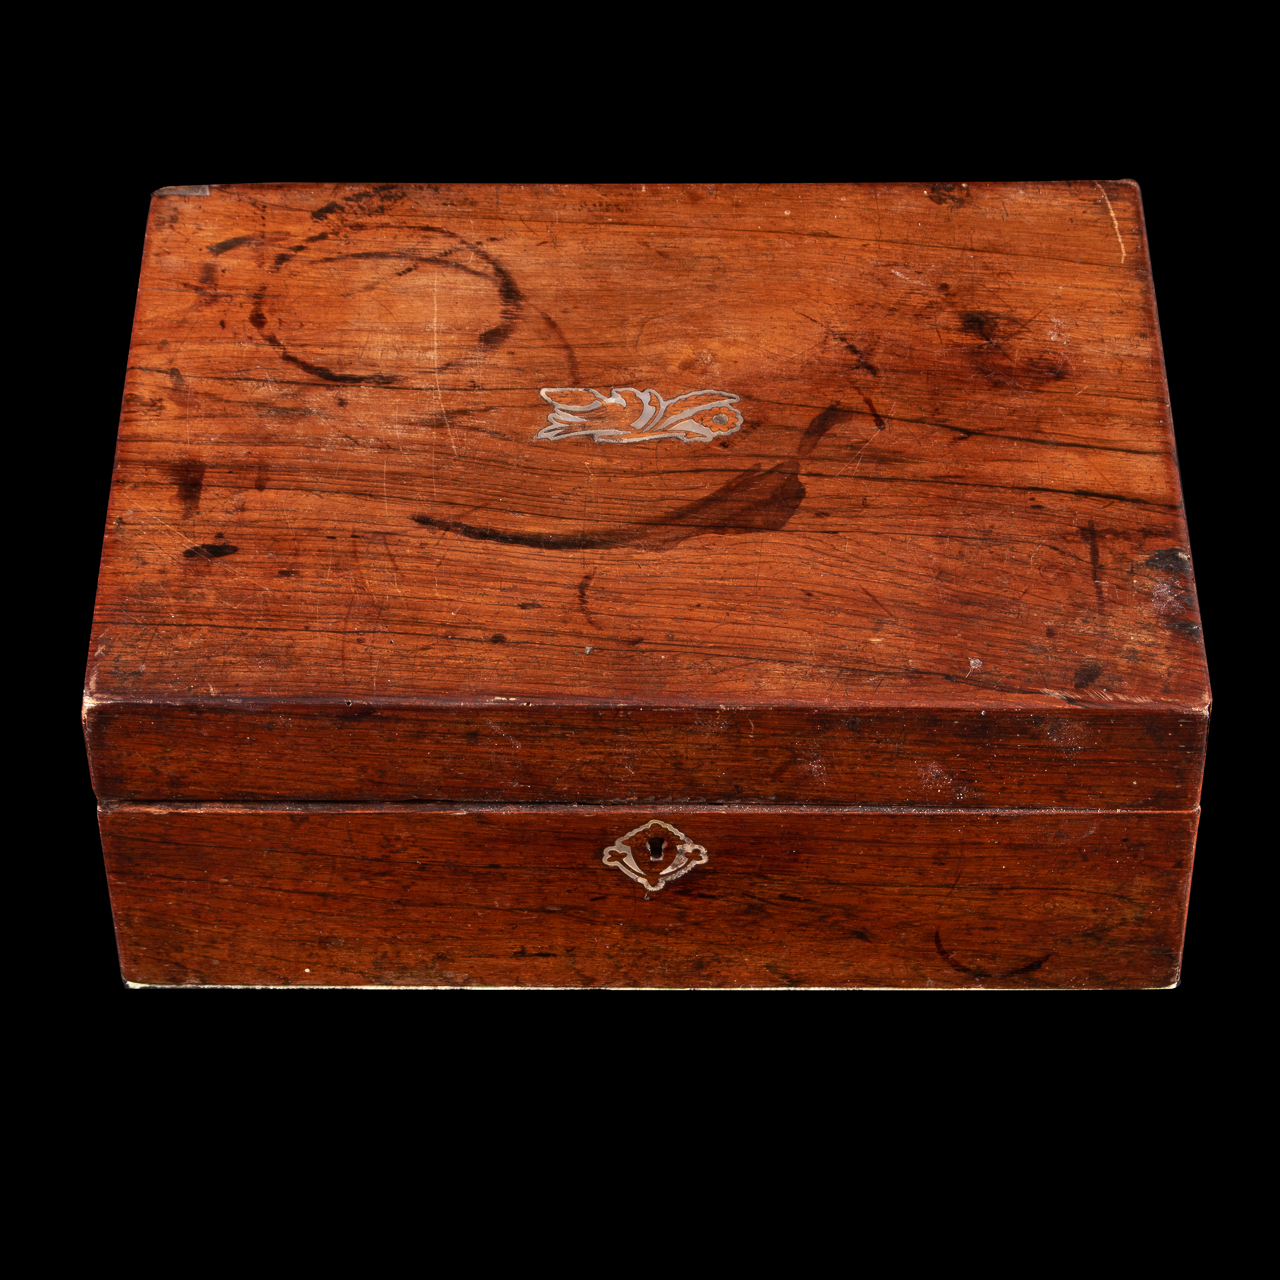 Jewellery Box with Mother of Pearl Inlay - Image 2 of 5